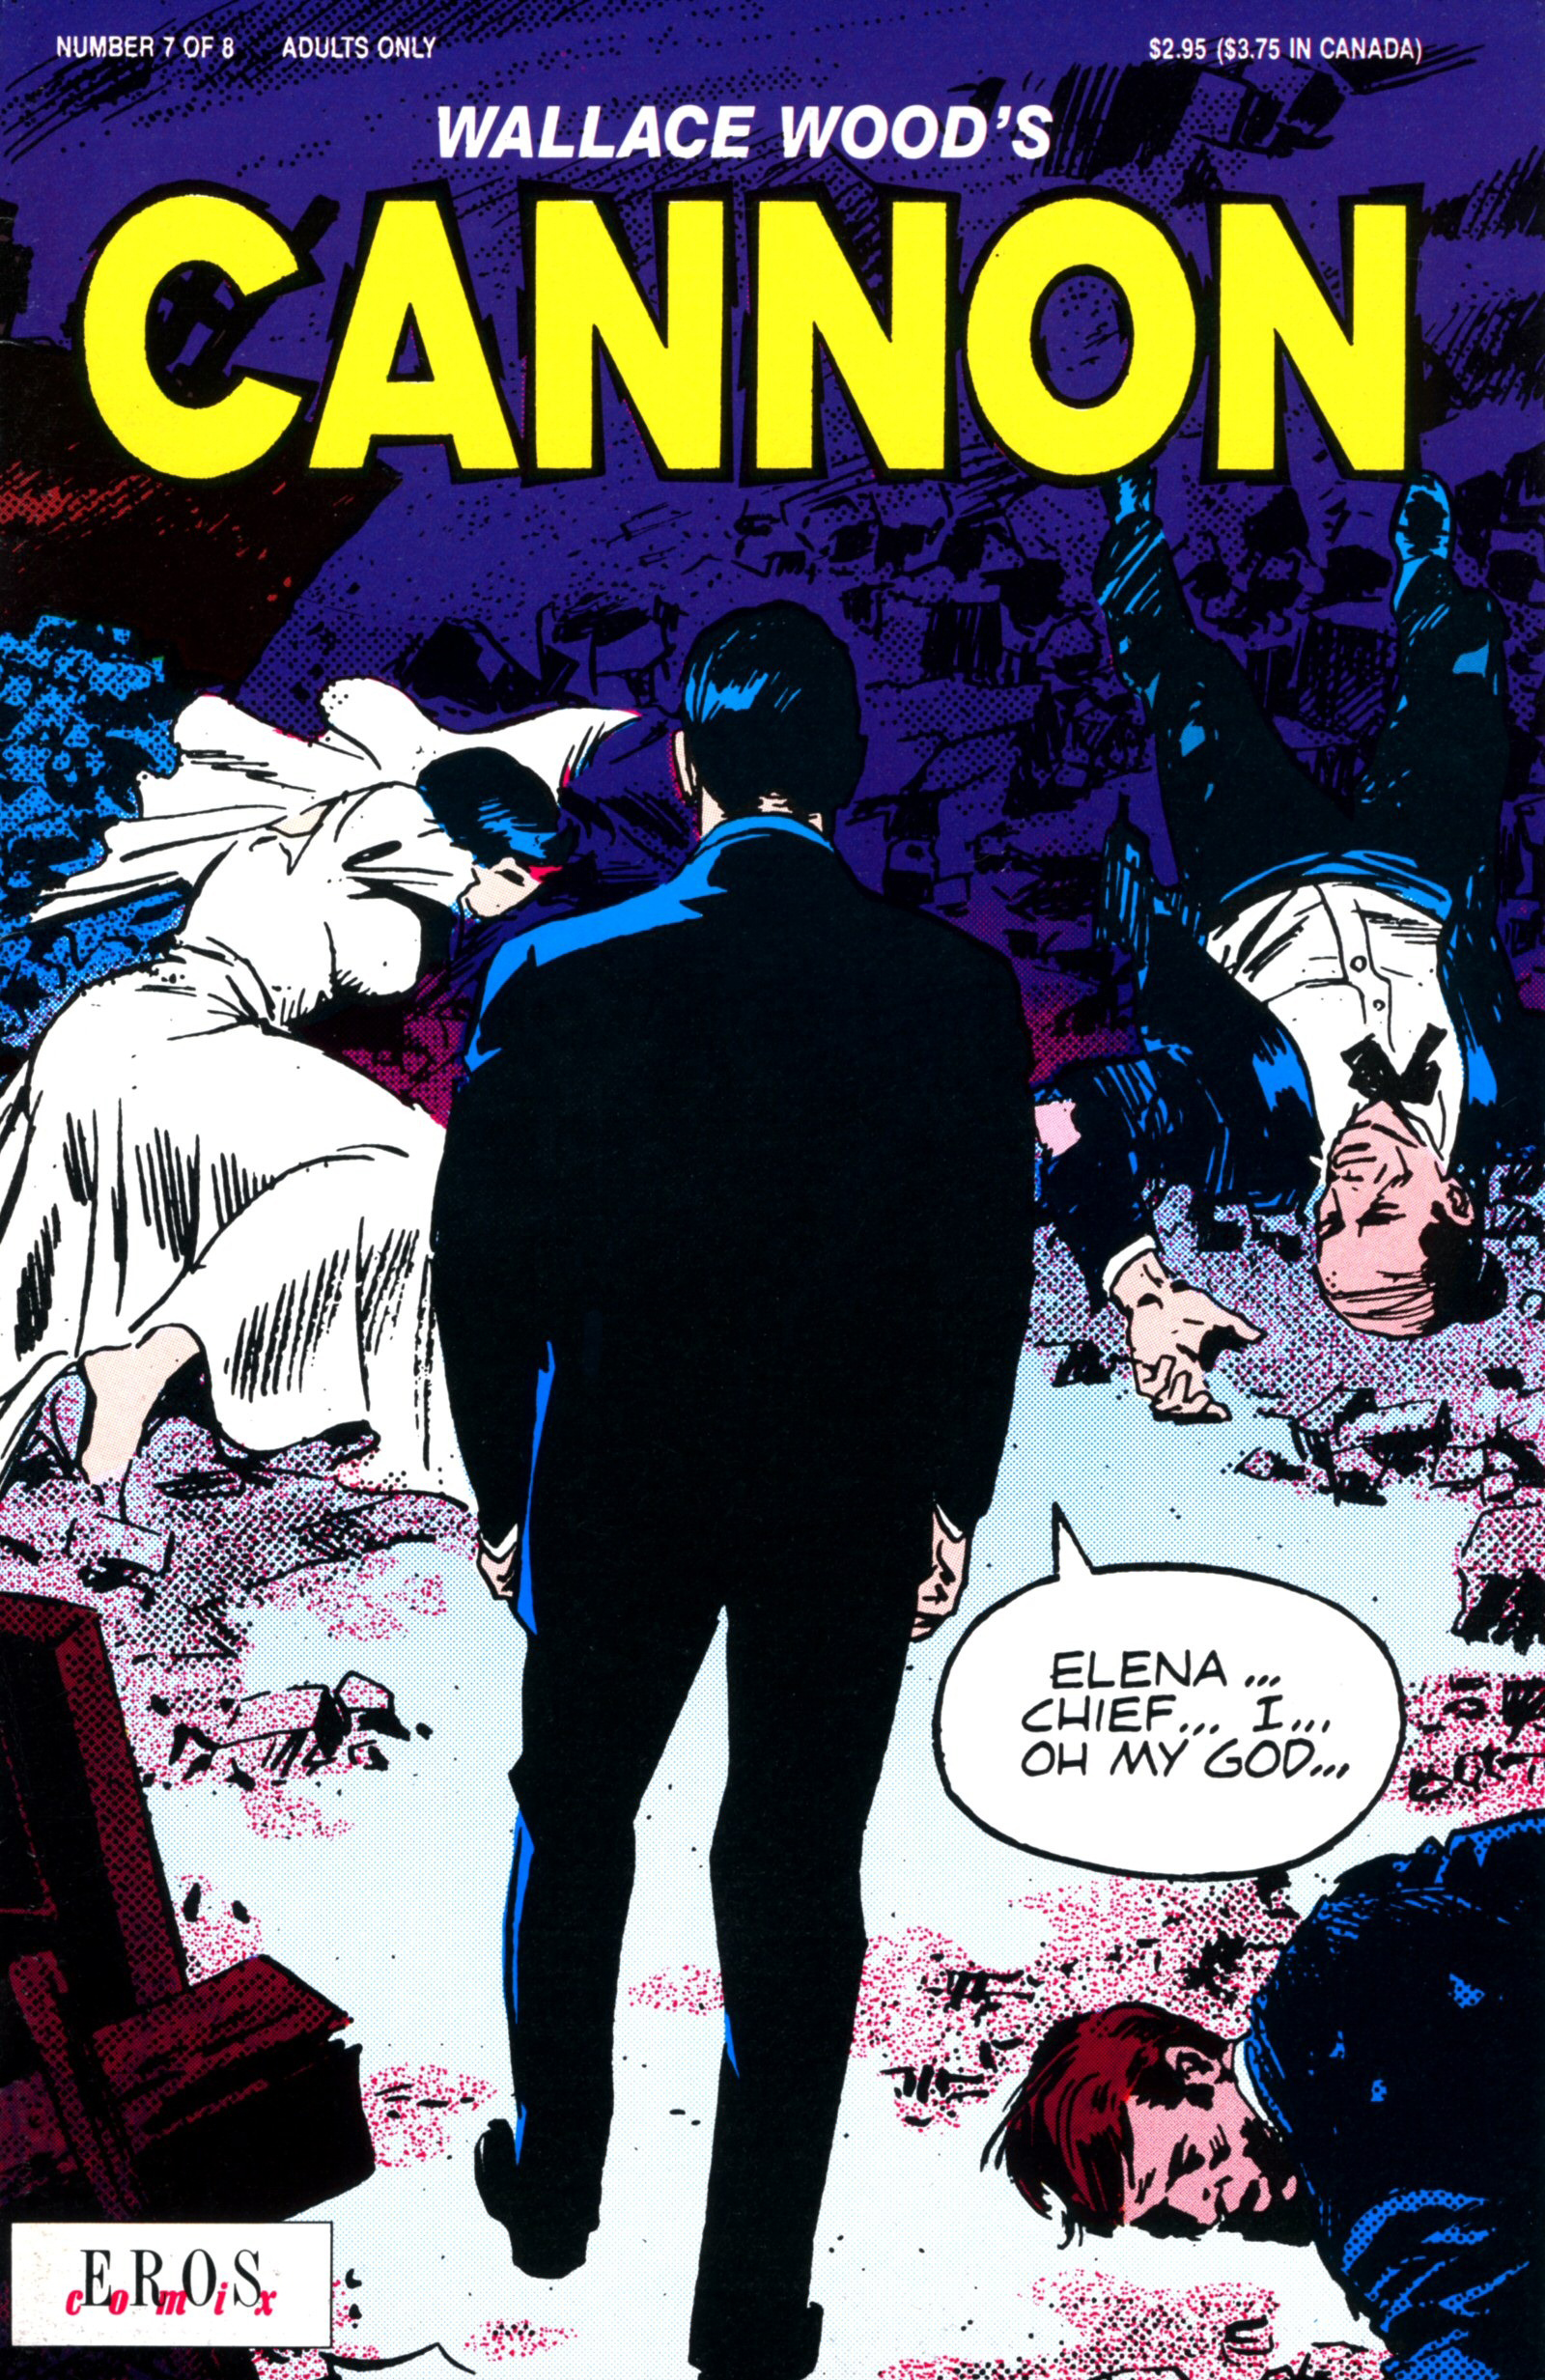 Cannon #7 Revenge for a lost love